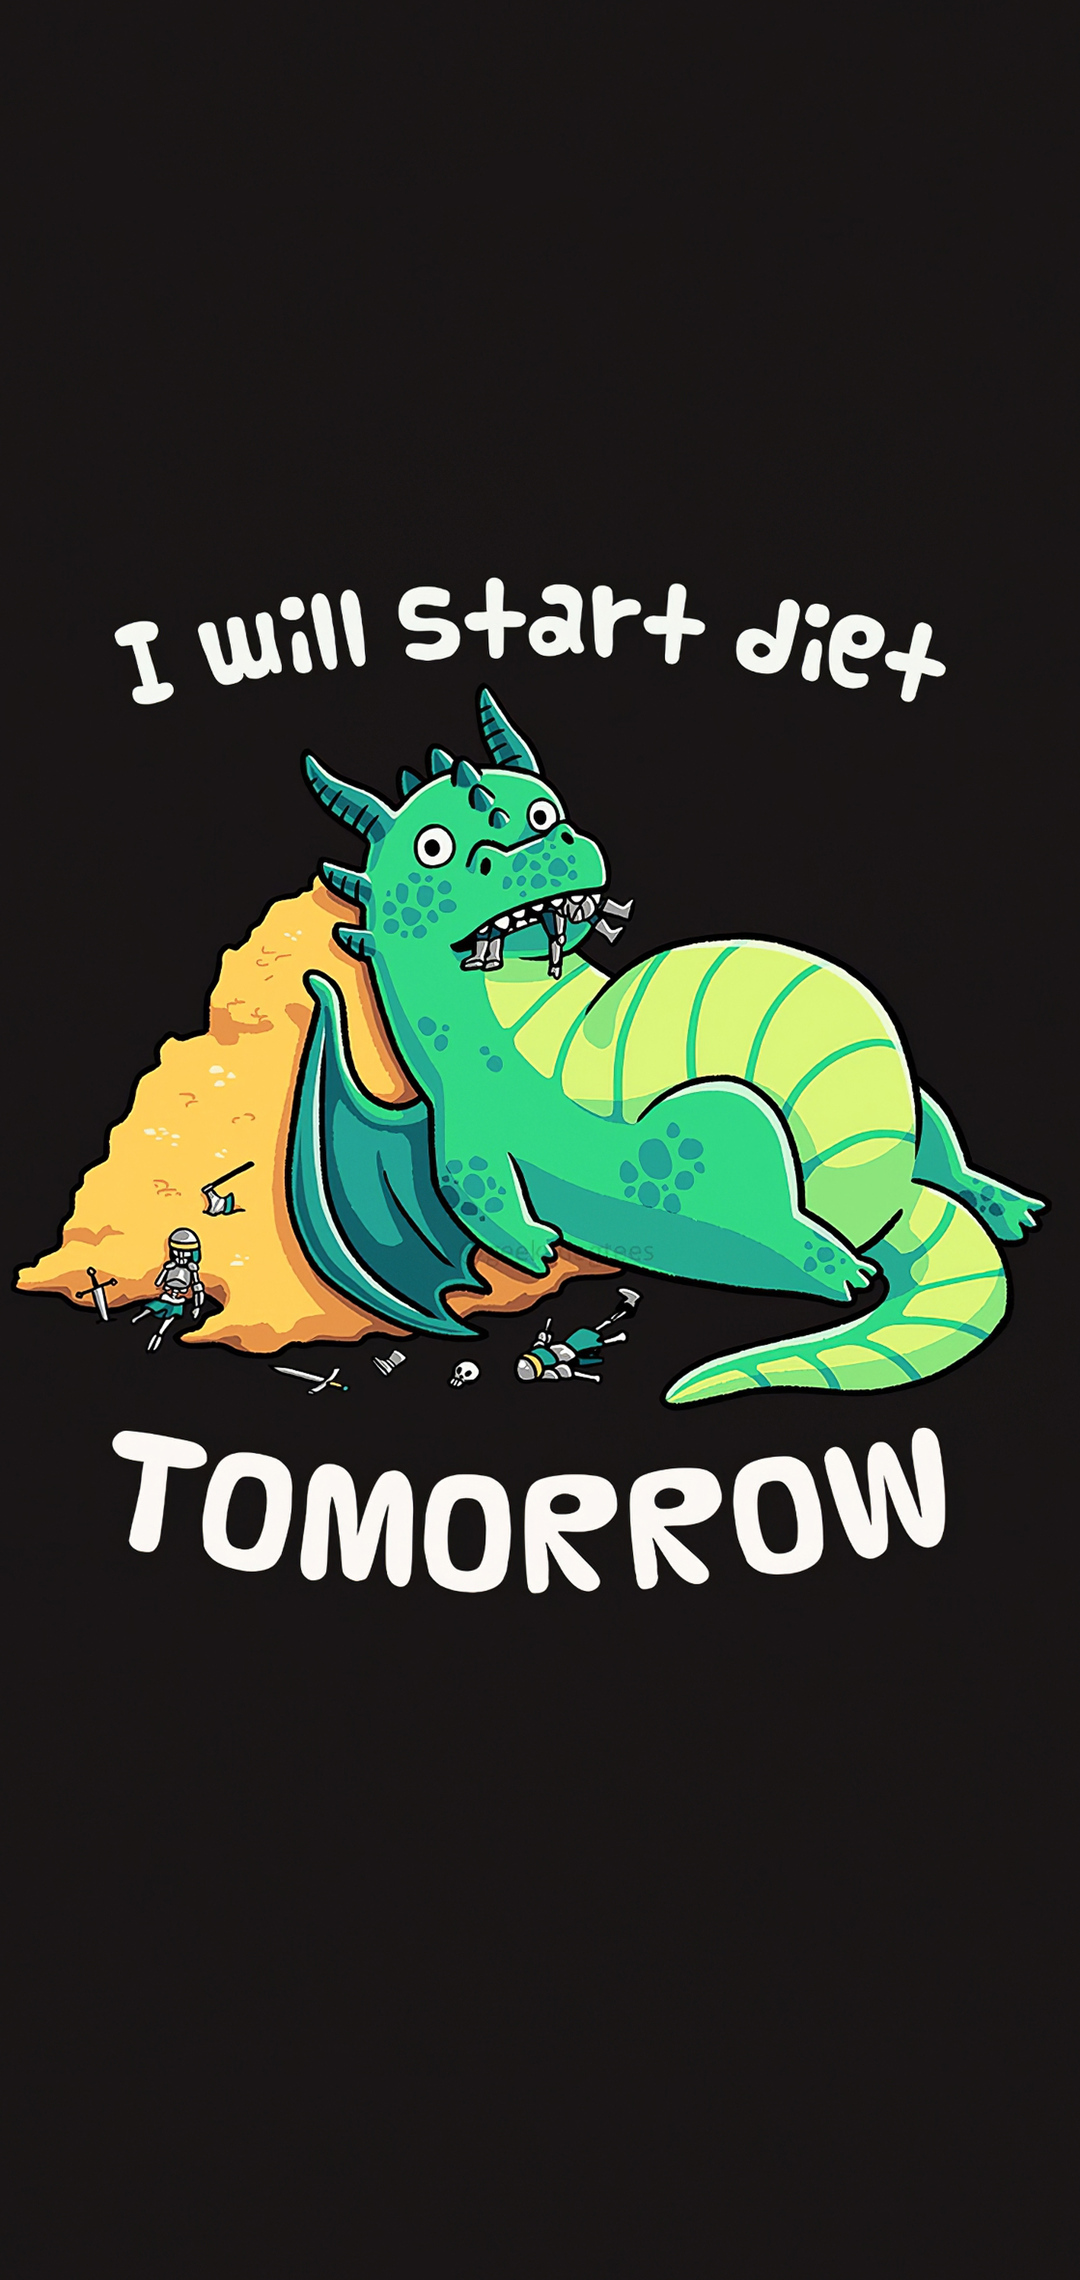 i-will-start-diet-tomorrow-funny-dragon-4k-41.jpg